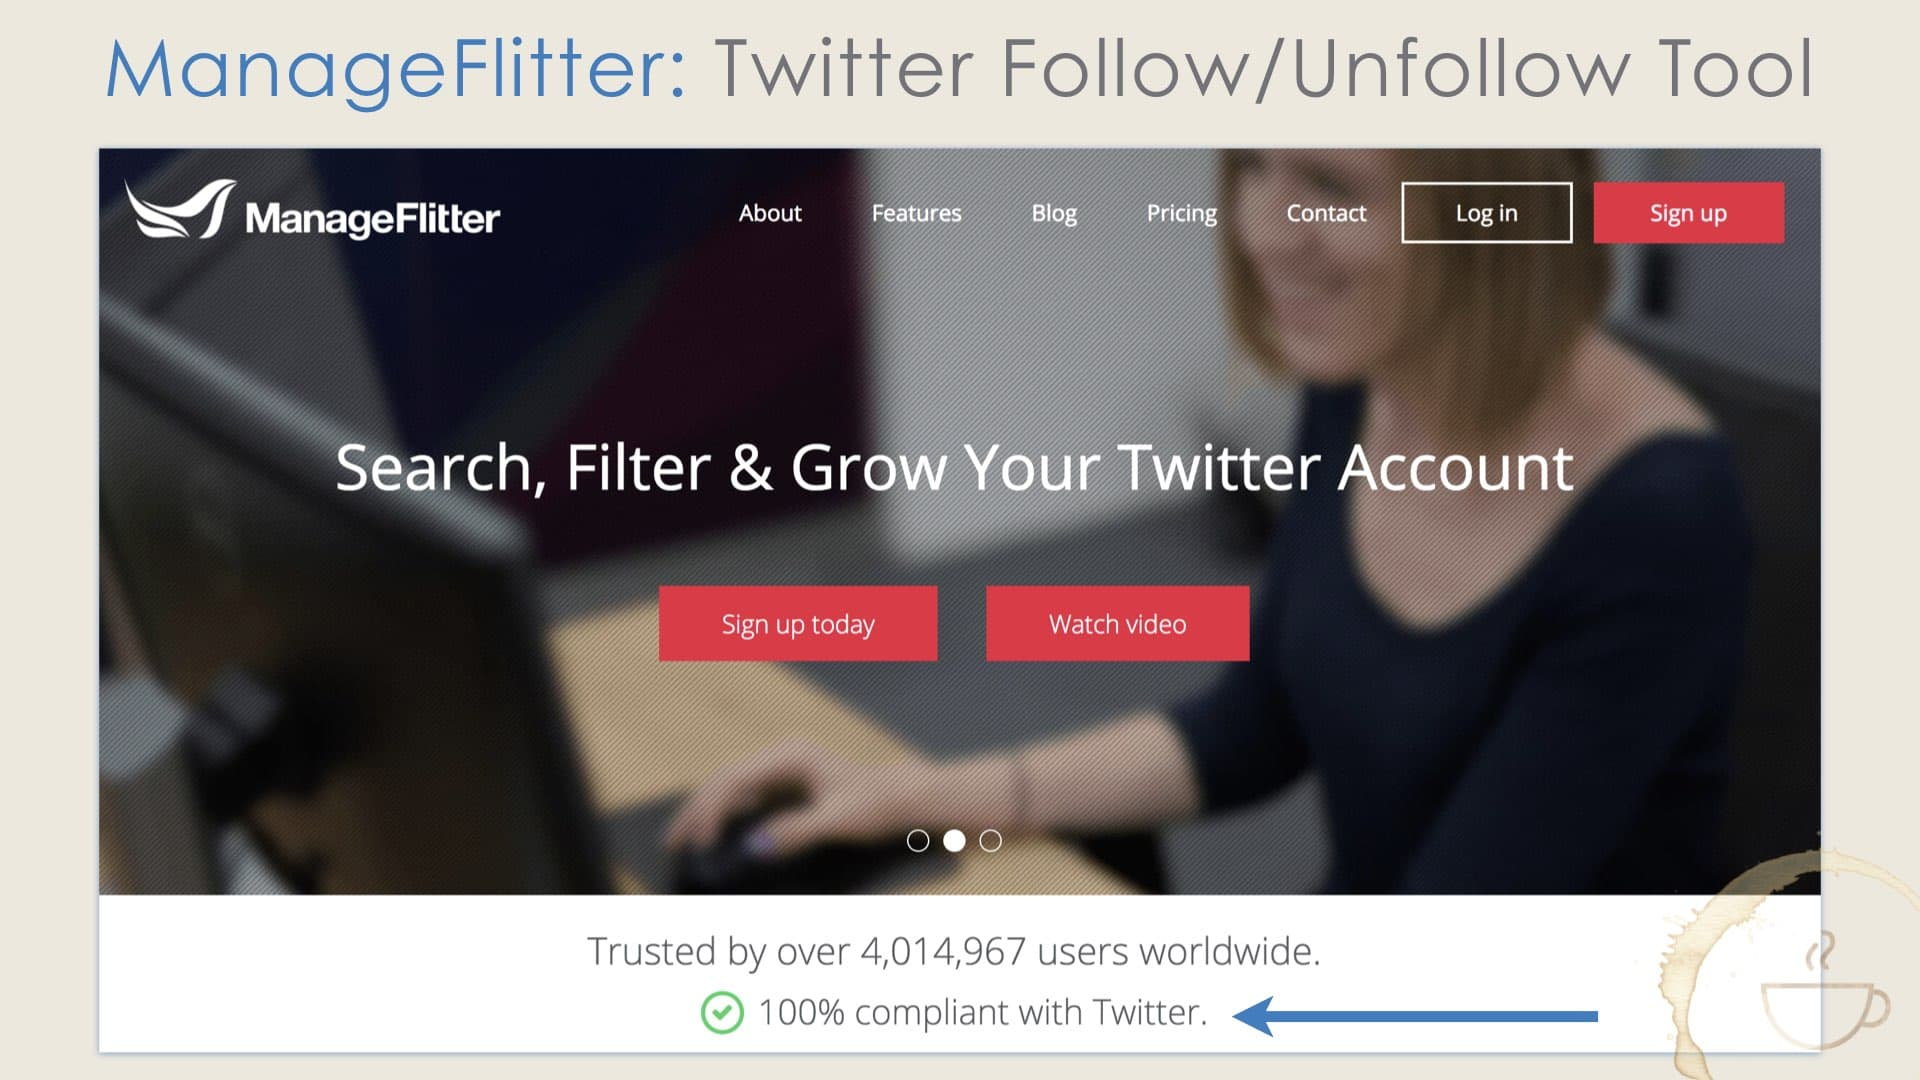 RIP ManageFlitter.com, best Twitter tool for following and unfollowing.